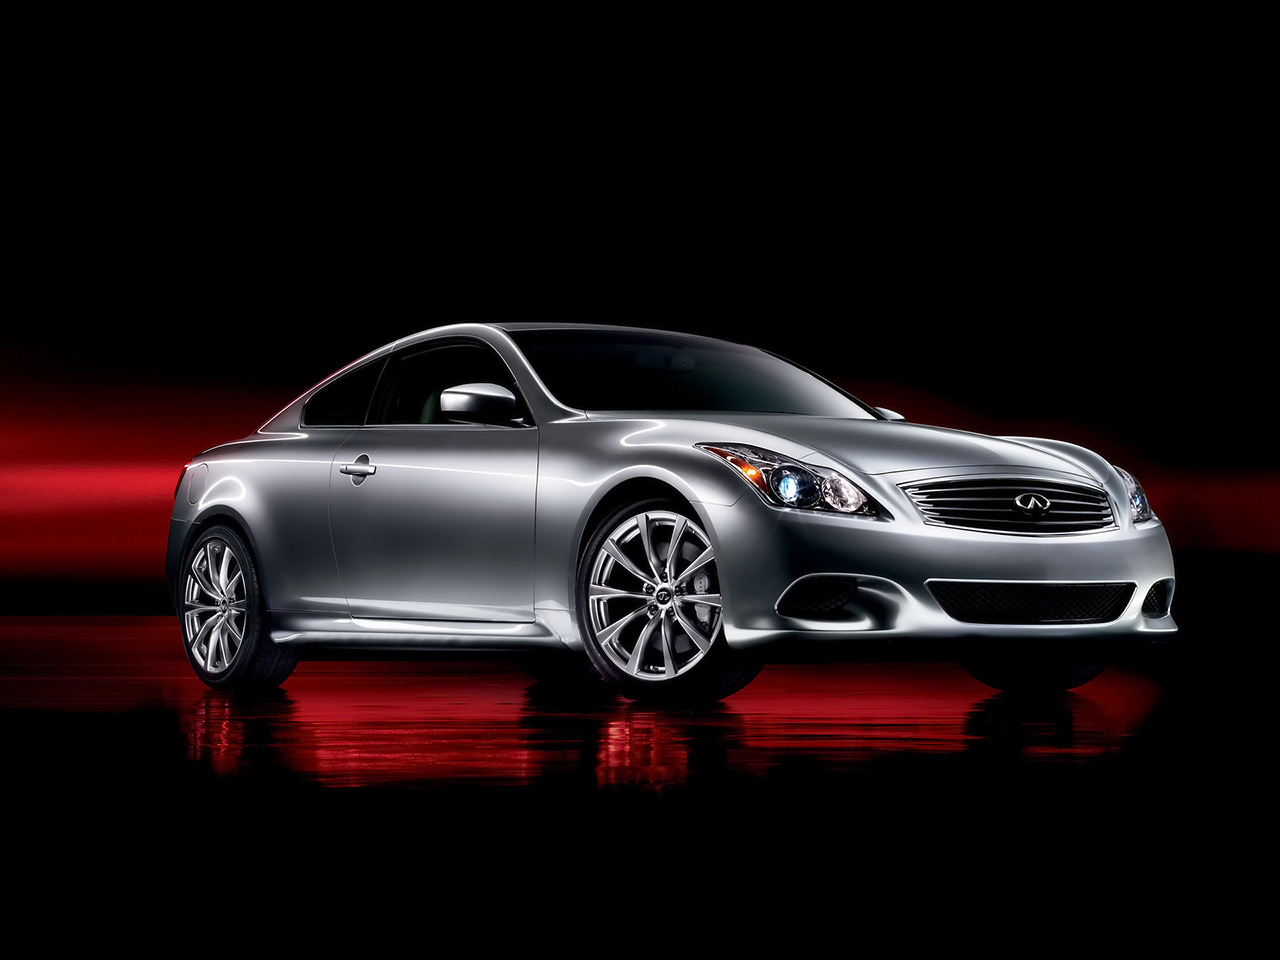 Infiniti\ local arm has deemed to be too far into its life cycle to Wallpapers HD